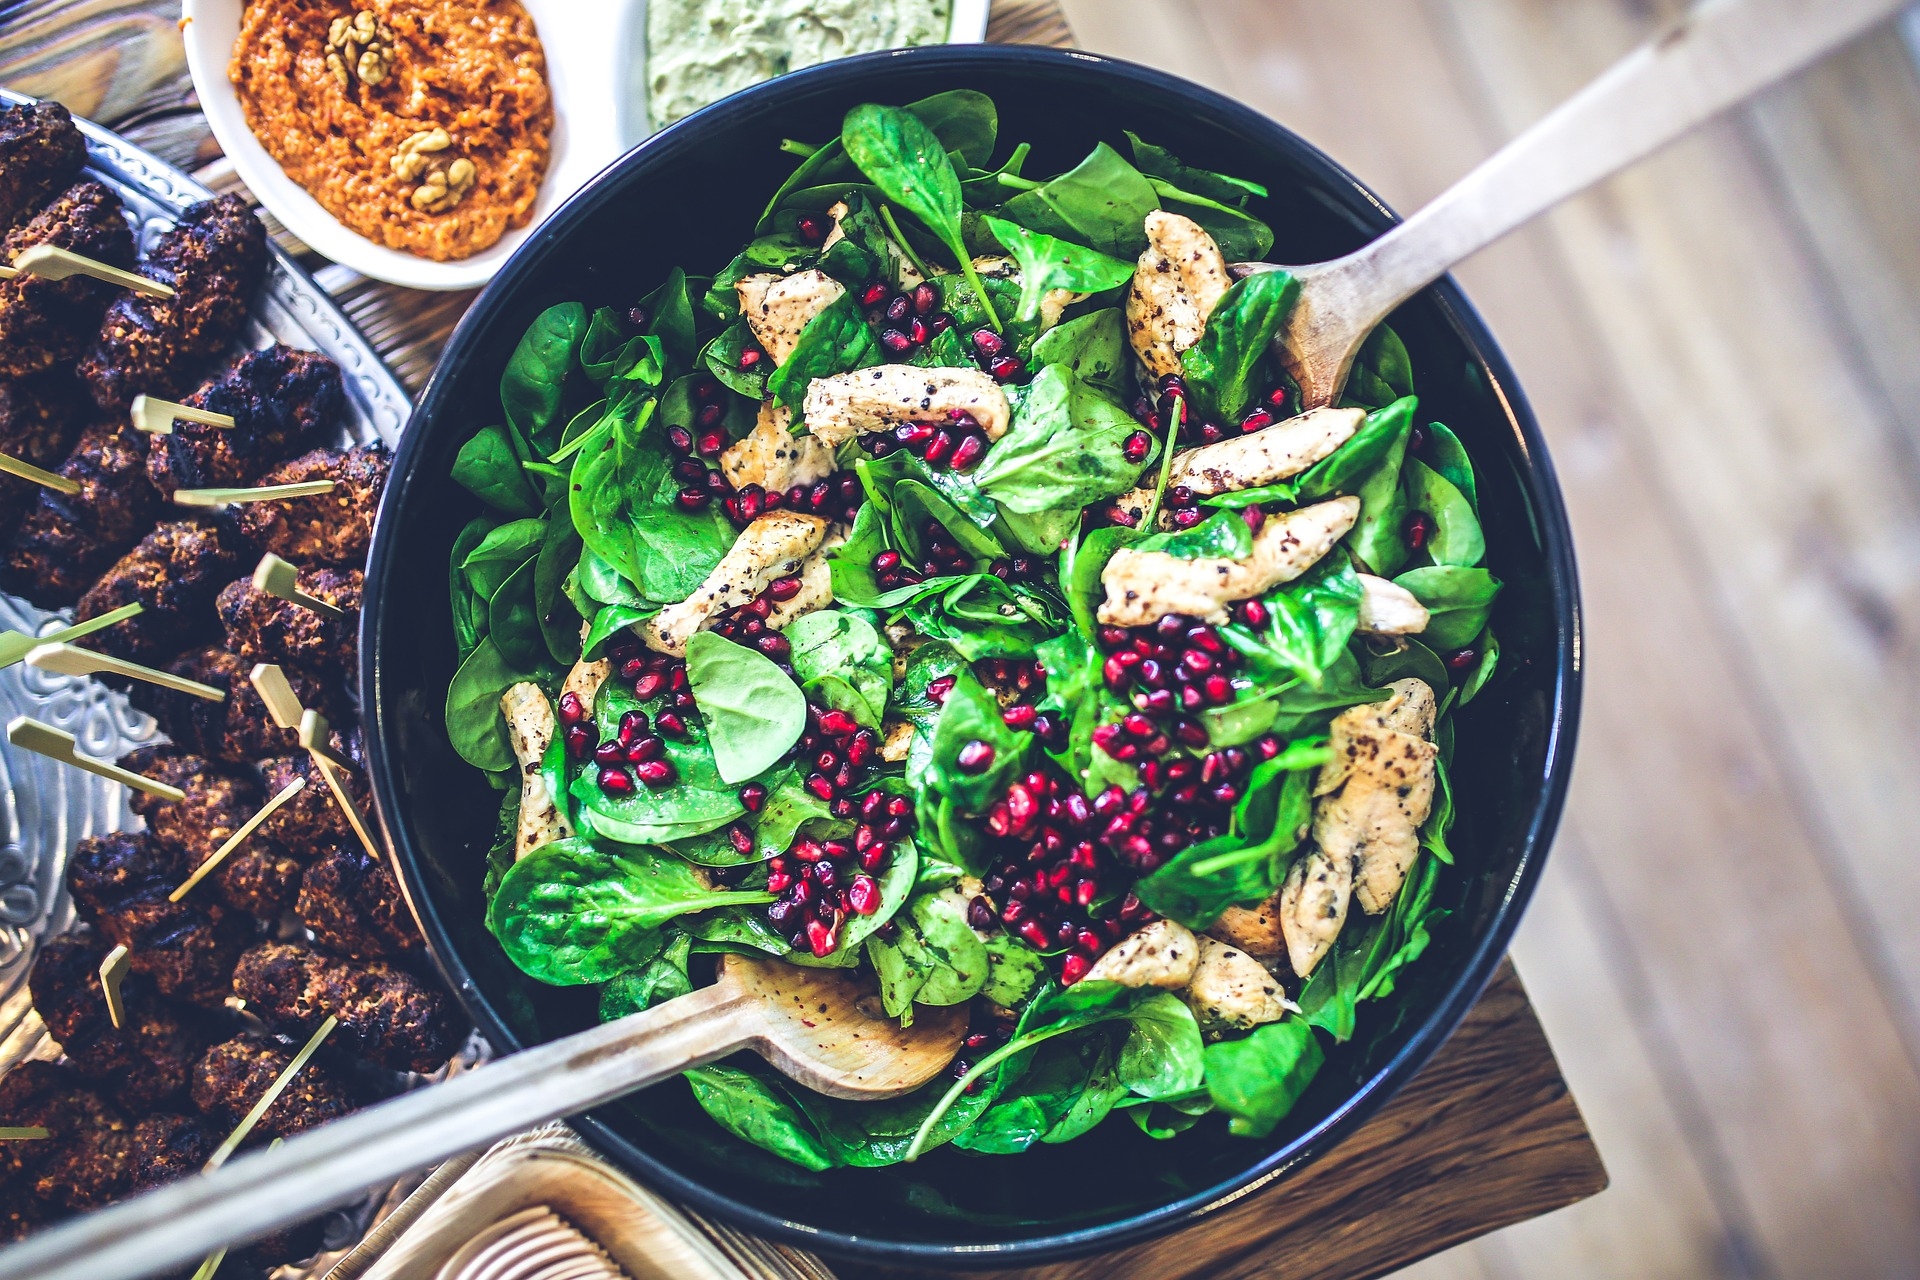 Chicken and spinach salad with pomegranate seeds